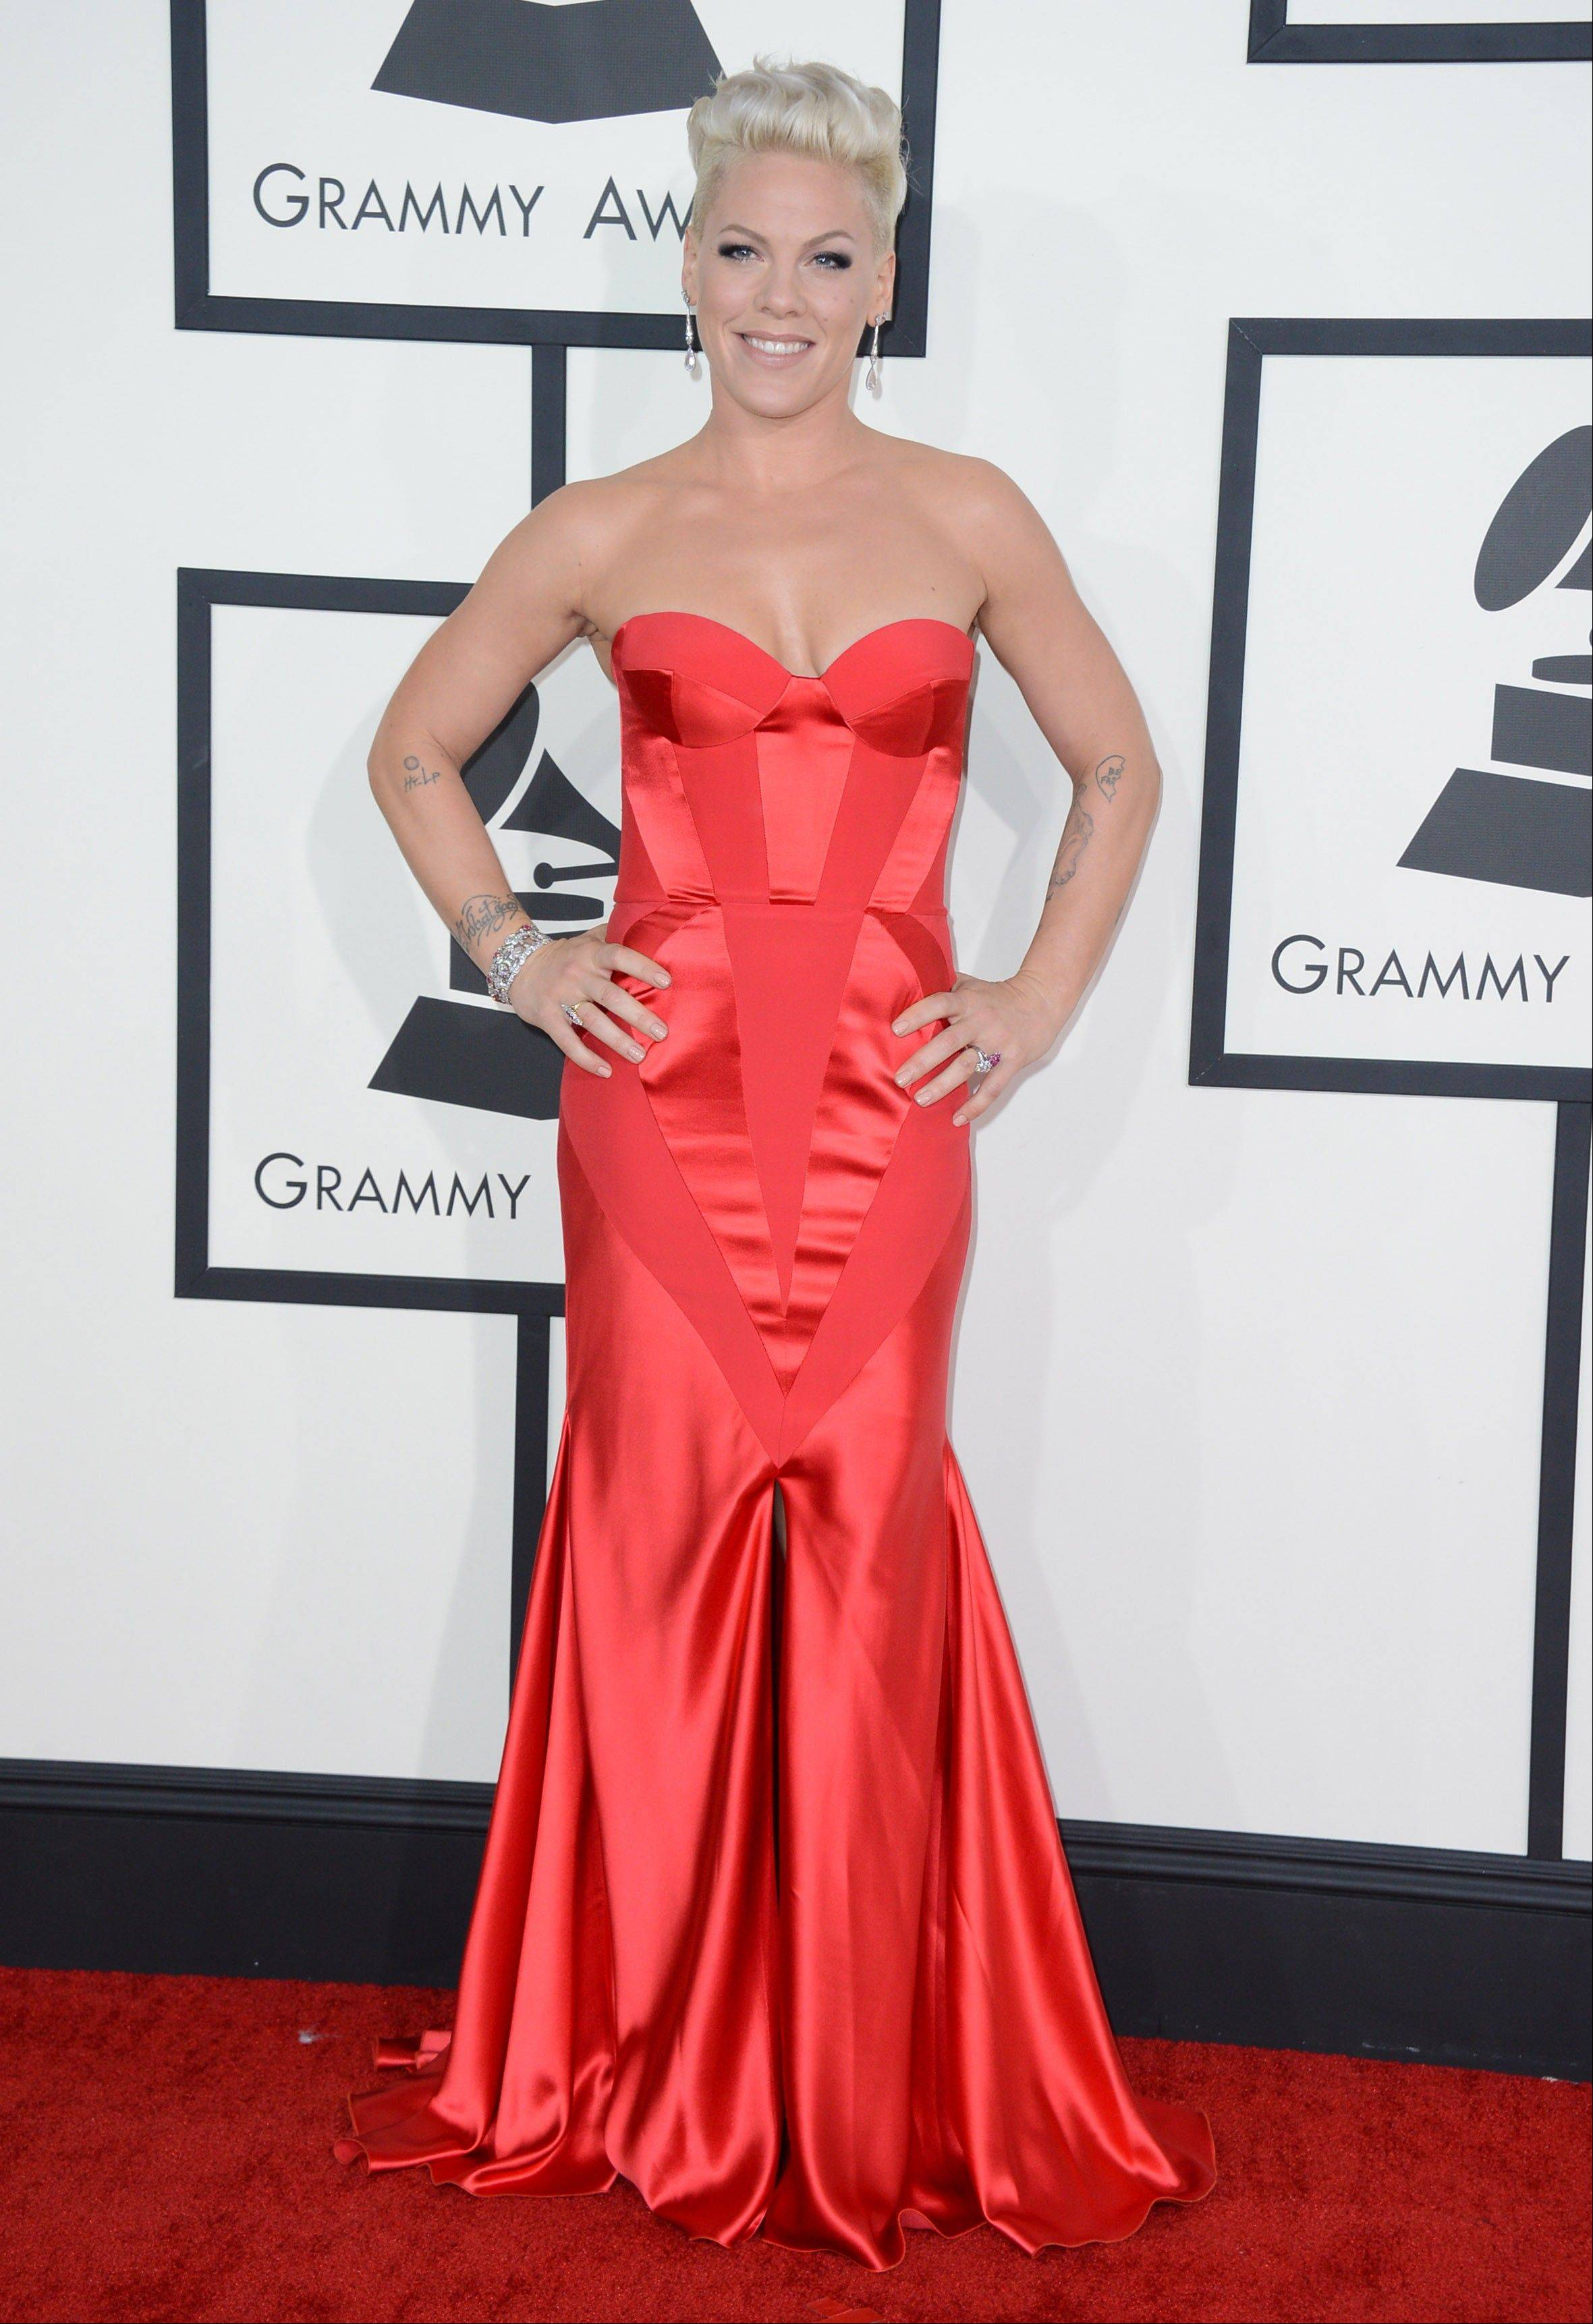 Pink arrives at the 56th annual Grammy Awards at Staples Center on Sunday.